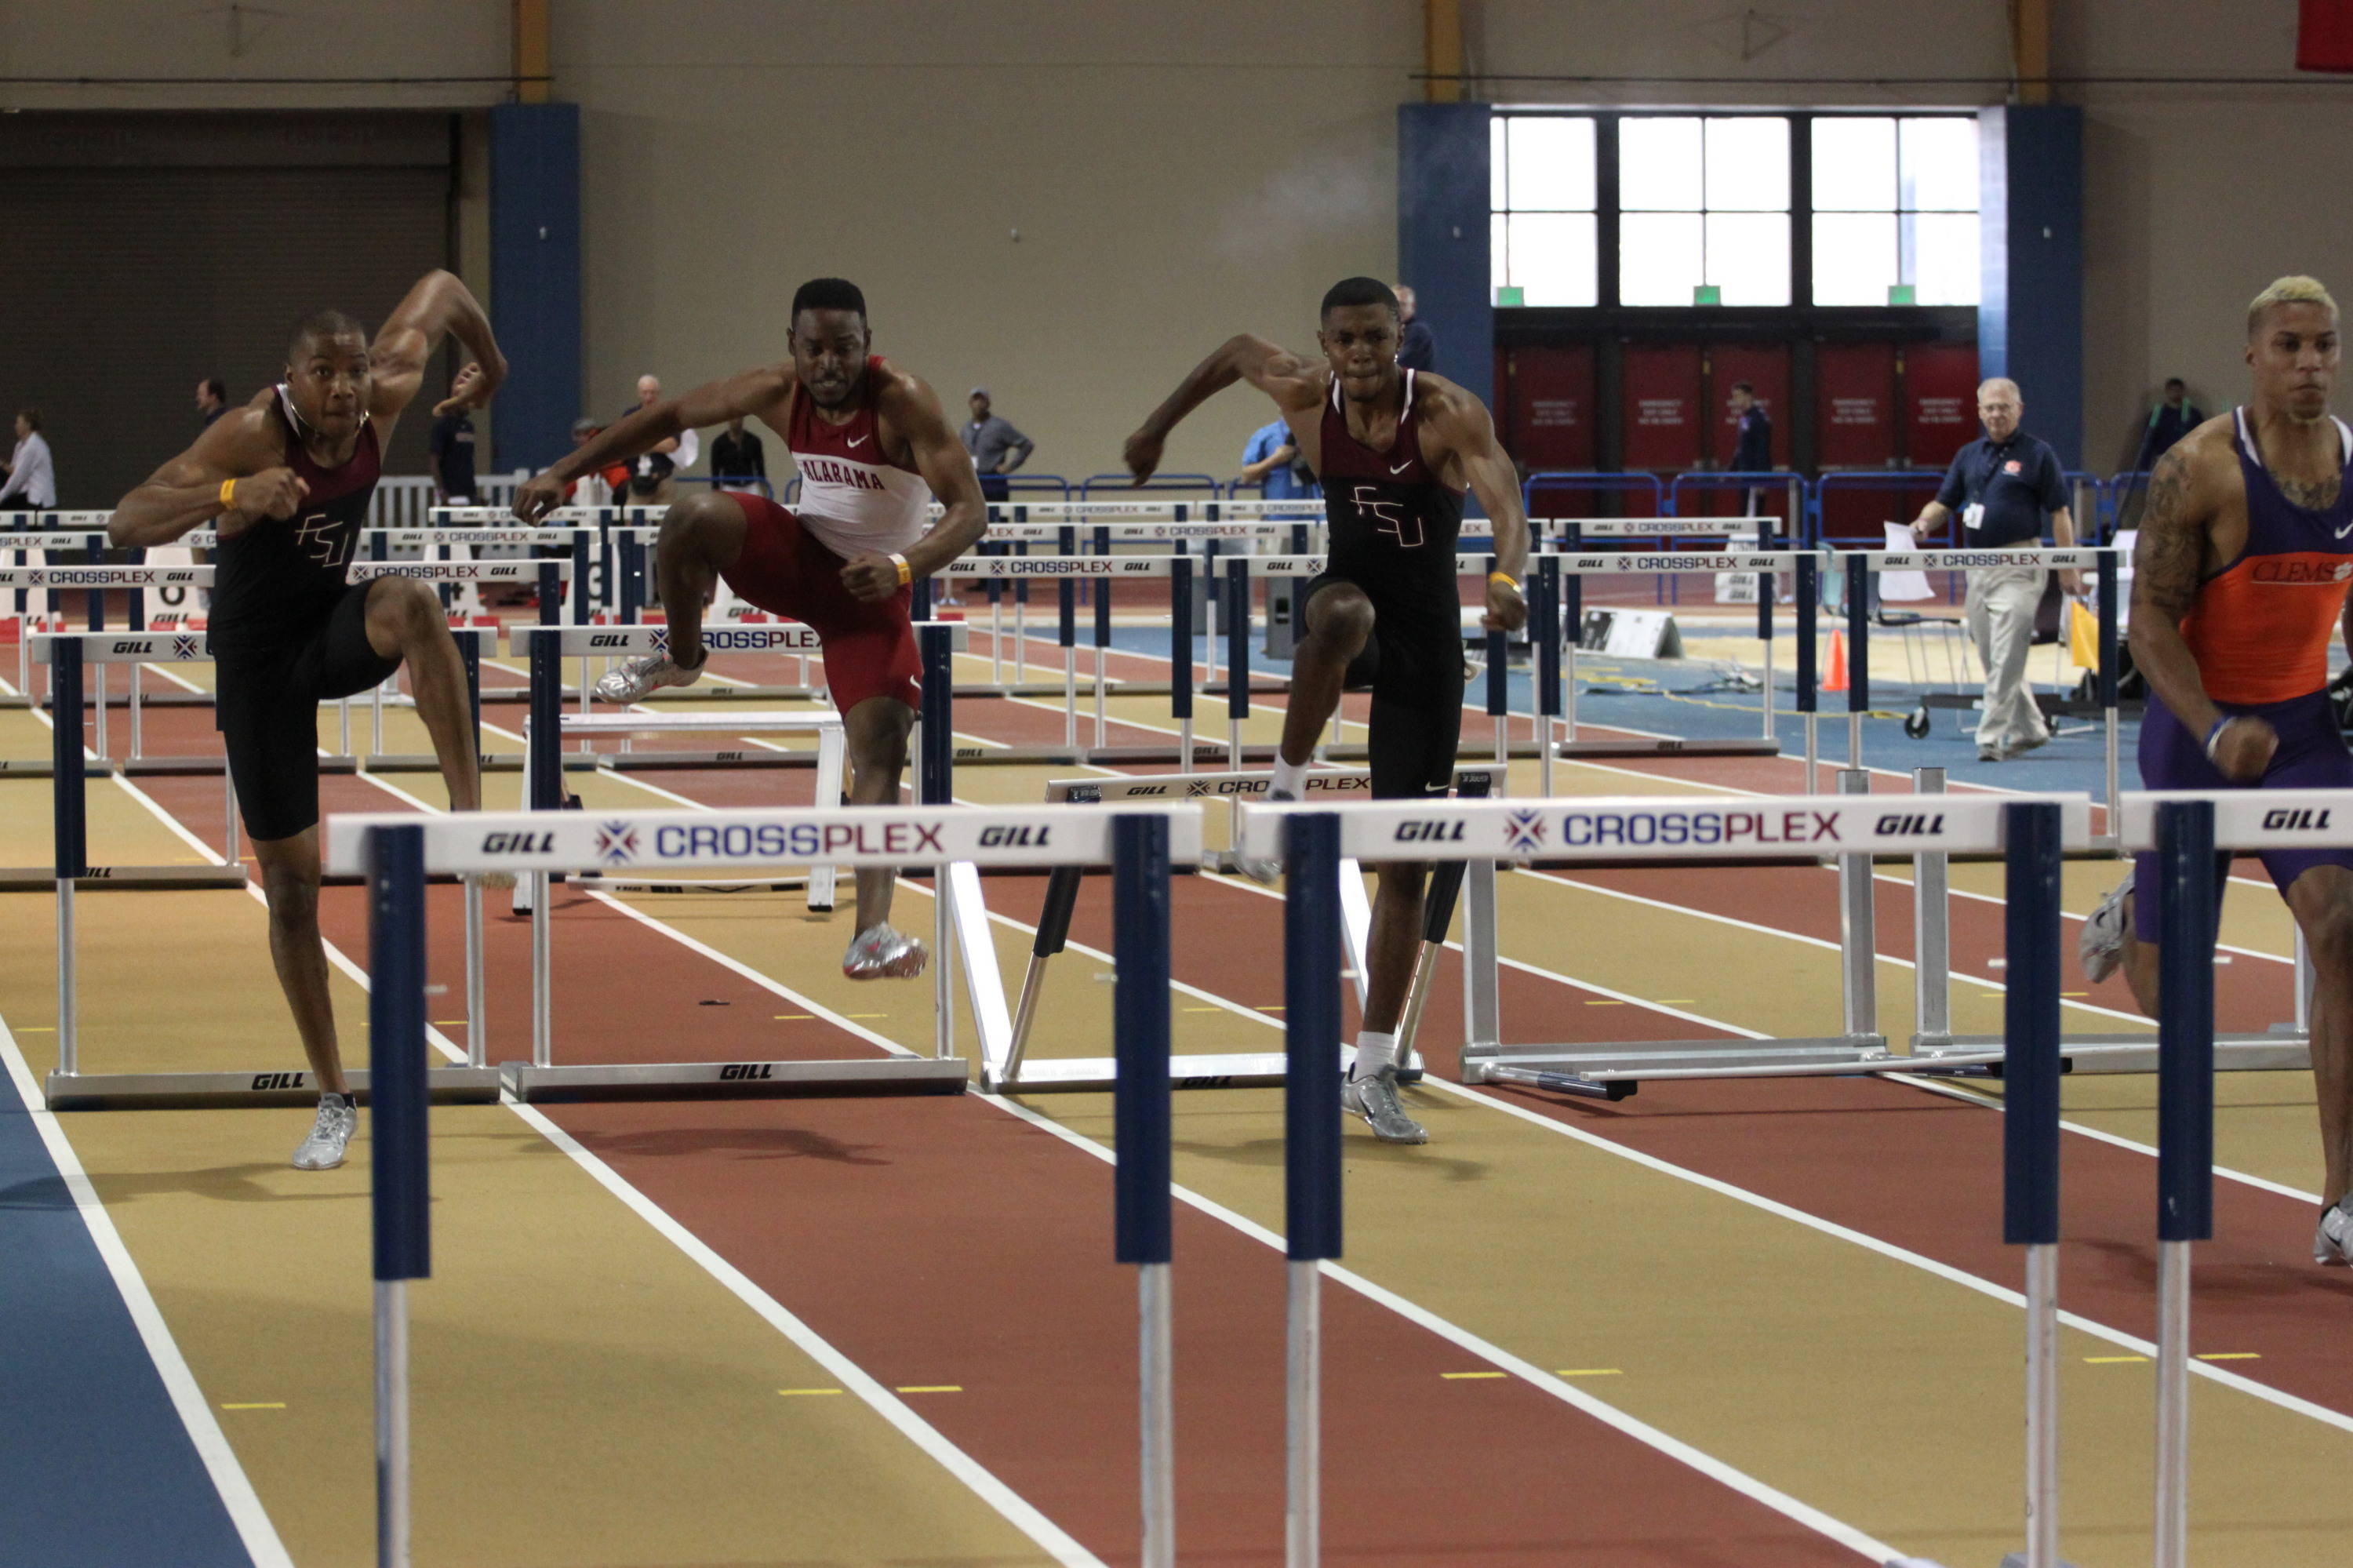 Justin Byrd (left) and Tremaine Grant (third from left) posted personal bests in the qualifying heat of the 60m hurdles at the Auburn Invitational.